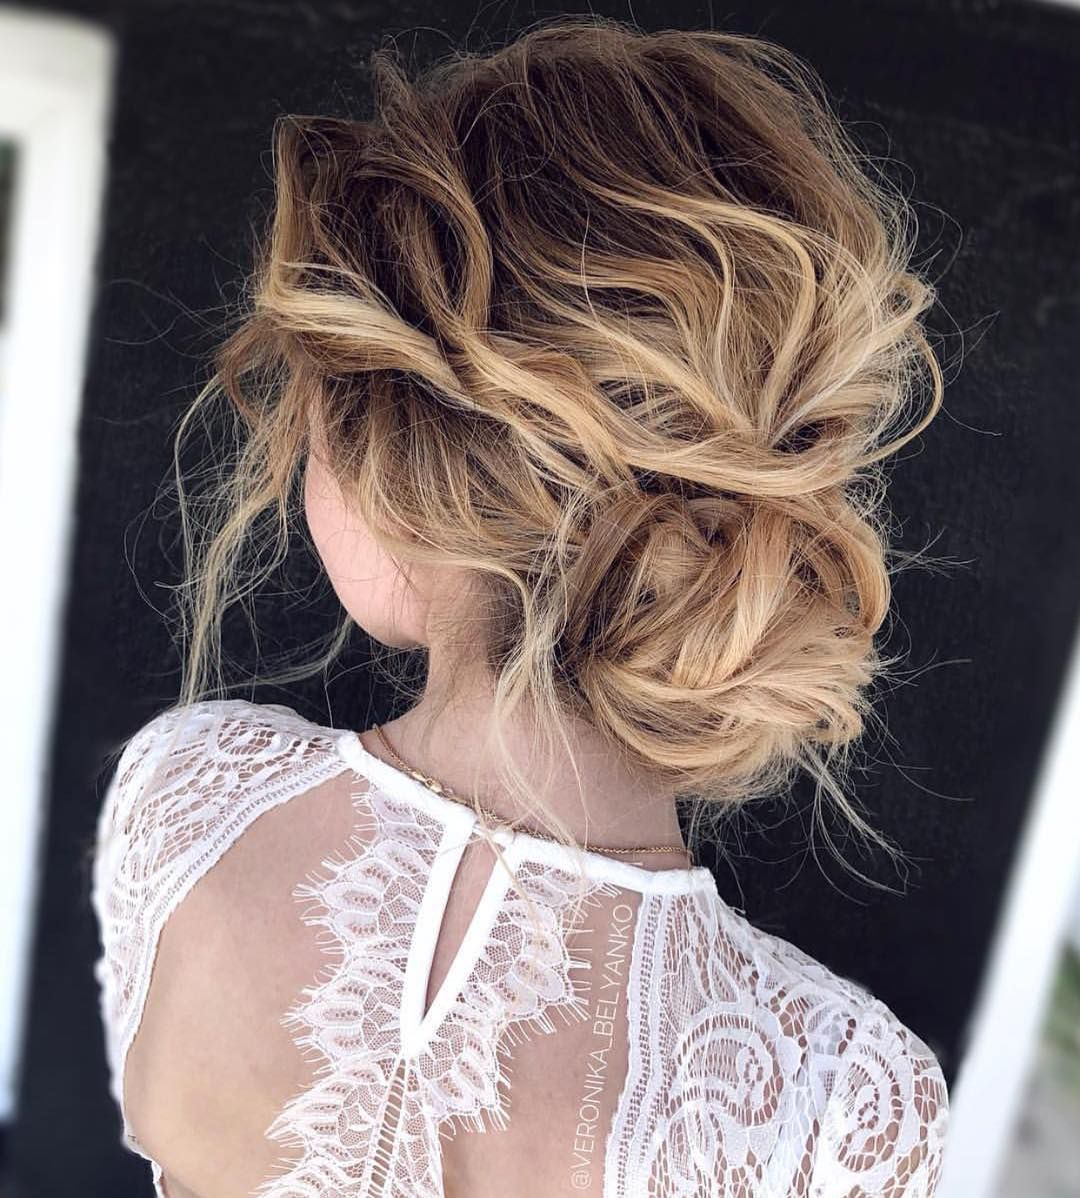 I can never get enough of the UNDONE TEXTURED UPDO beautifully